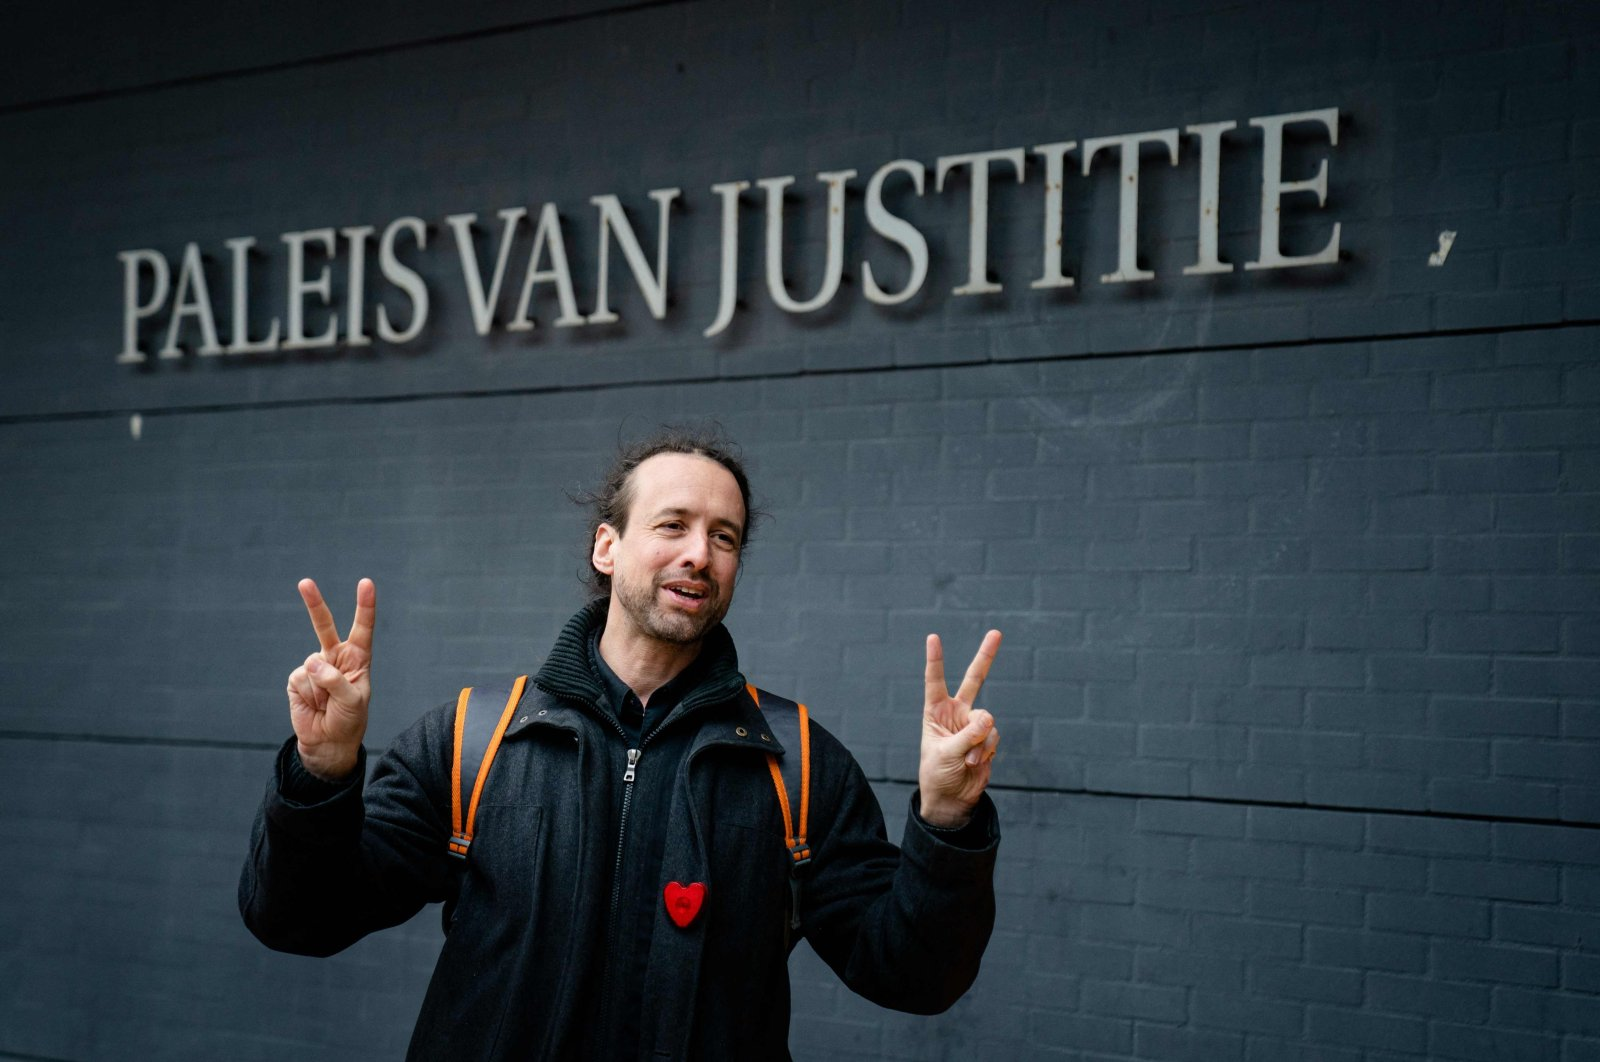 A member of the protest group Viruswaarheid (Virus Truth) Willem Engel arrives at the court of appeal where the Dutch state asked the court to suspend the judge's decision to cancel the nationwide curfew, in The Hague, The Netherlands, Feb. 16, 2021. (AFP Photo)